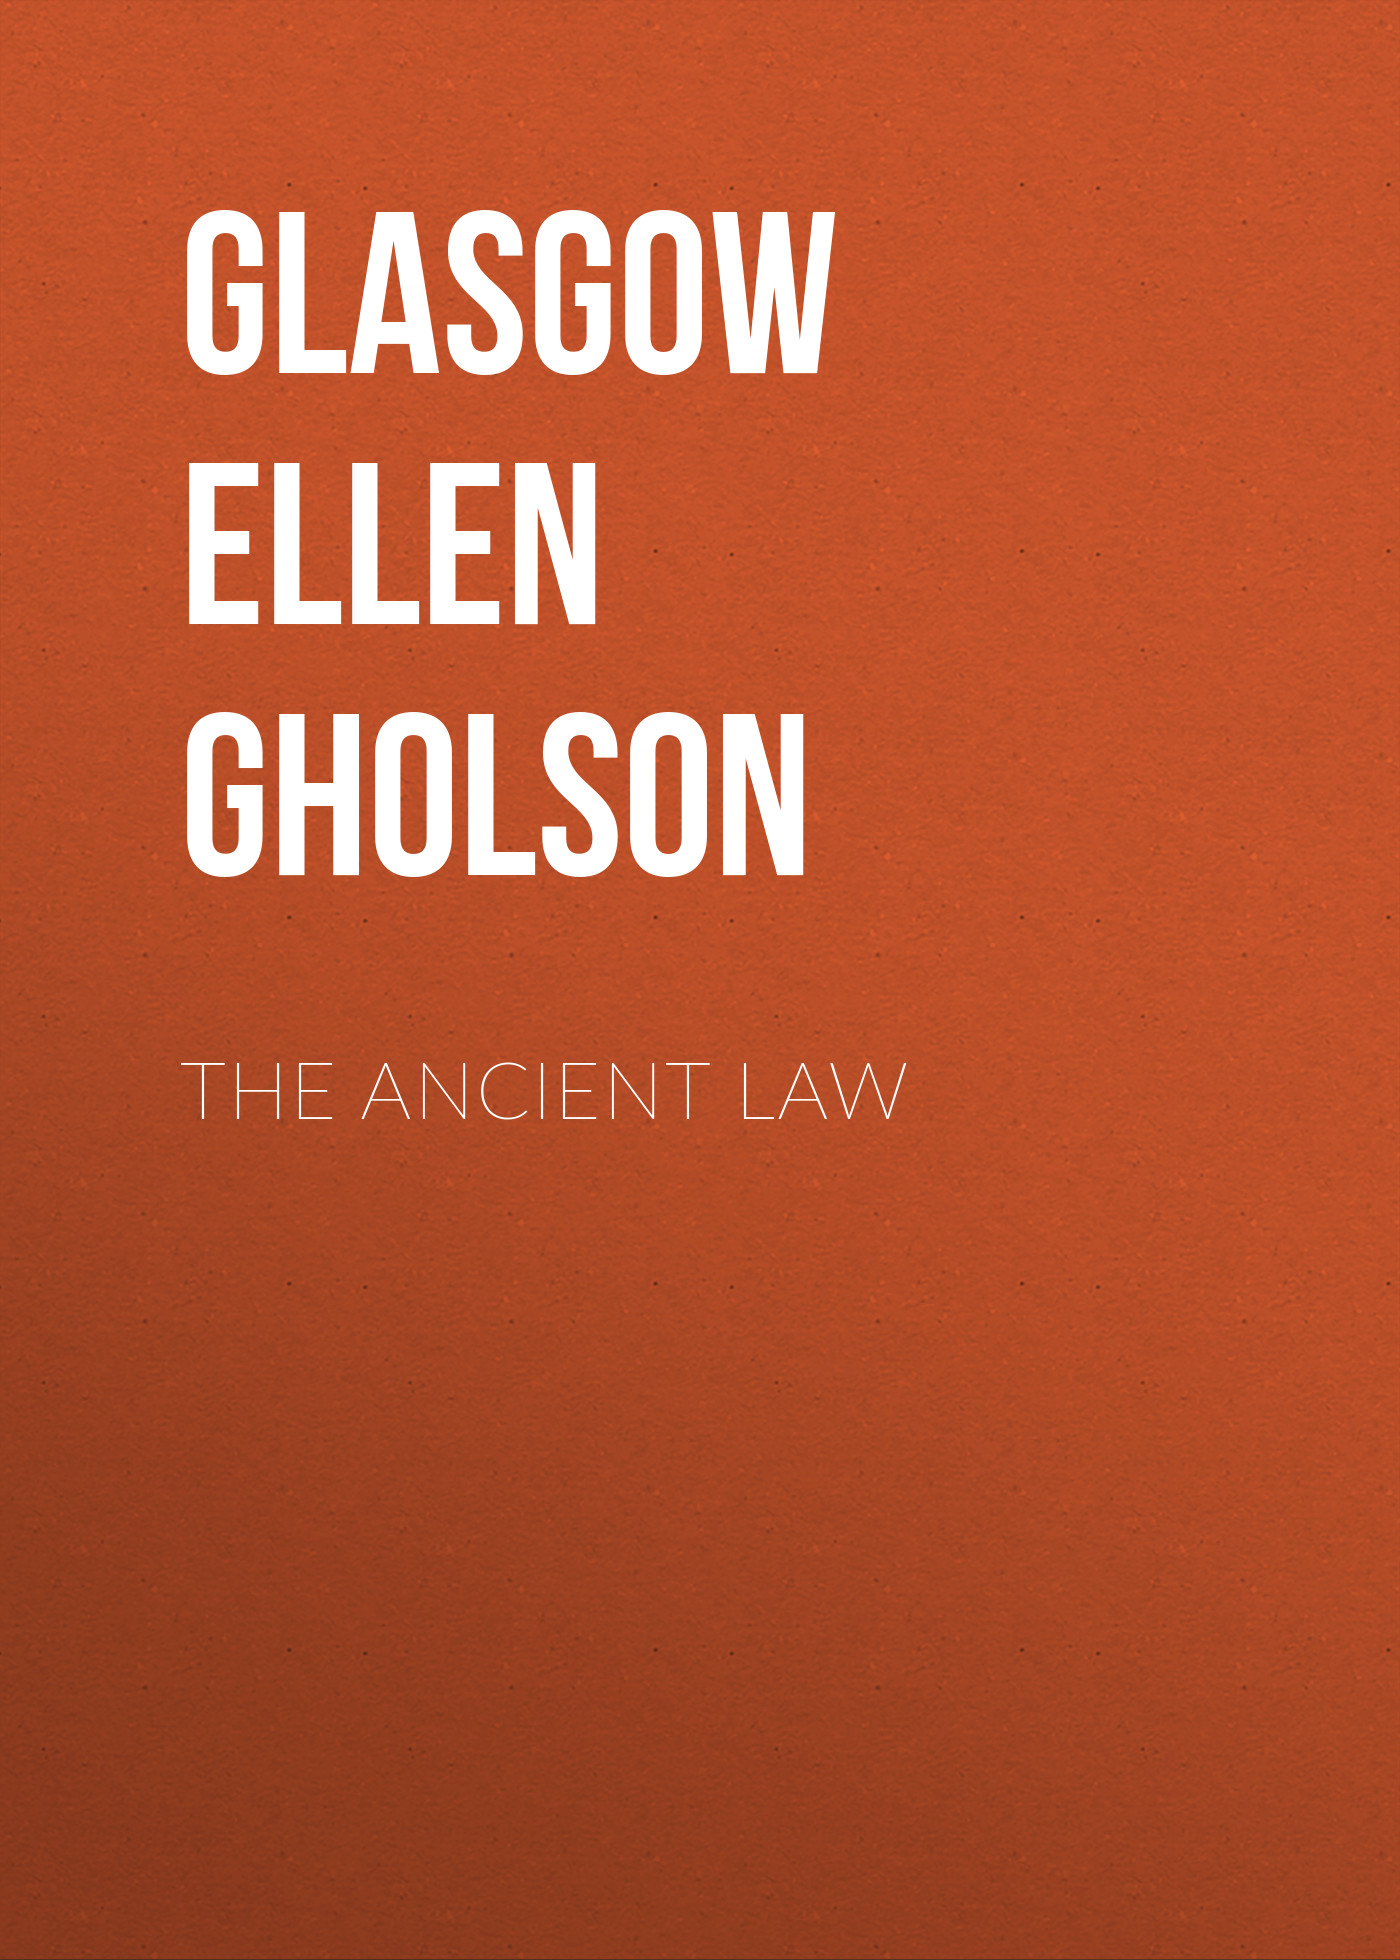 Glasgow Ellen Anderson Gholson The Ancient Law lesley harris ellen canadian copyright law